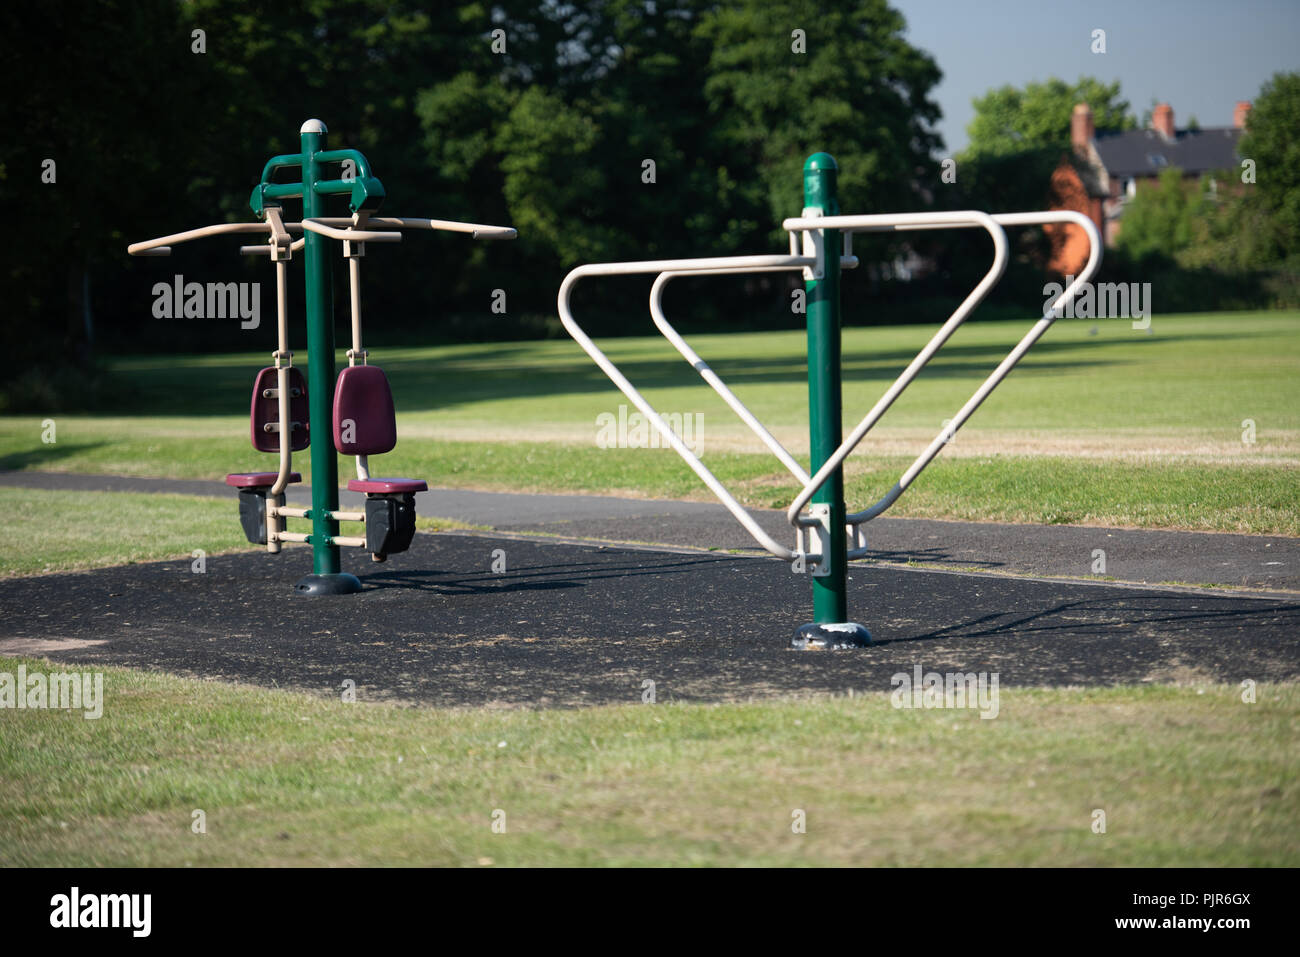 Outdoor gym exercise equipment in a public park. - Stock Image